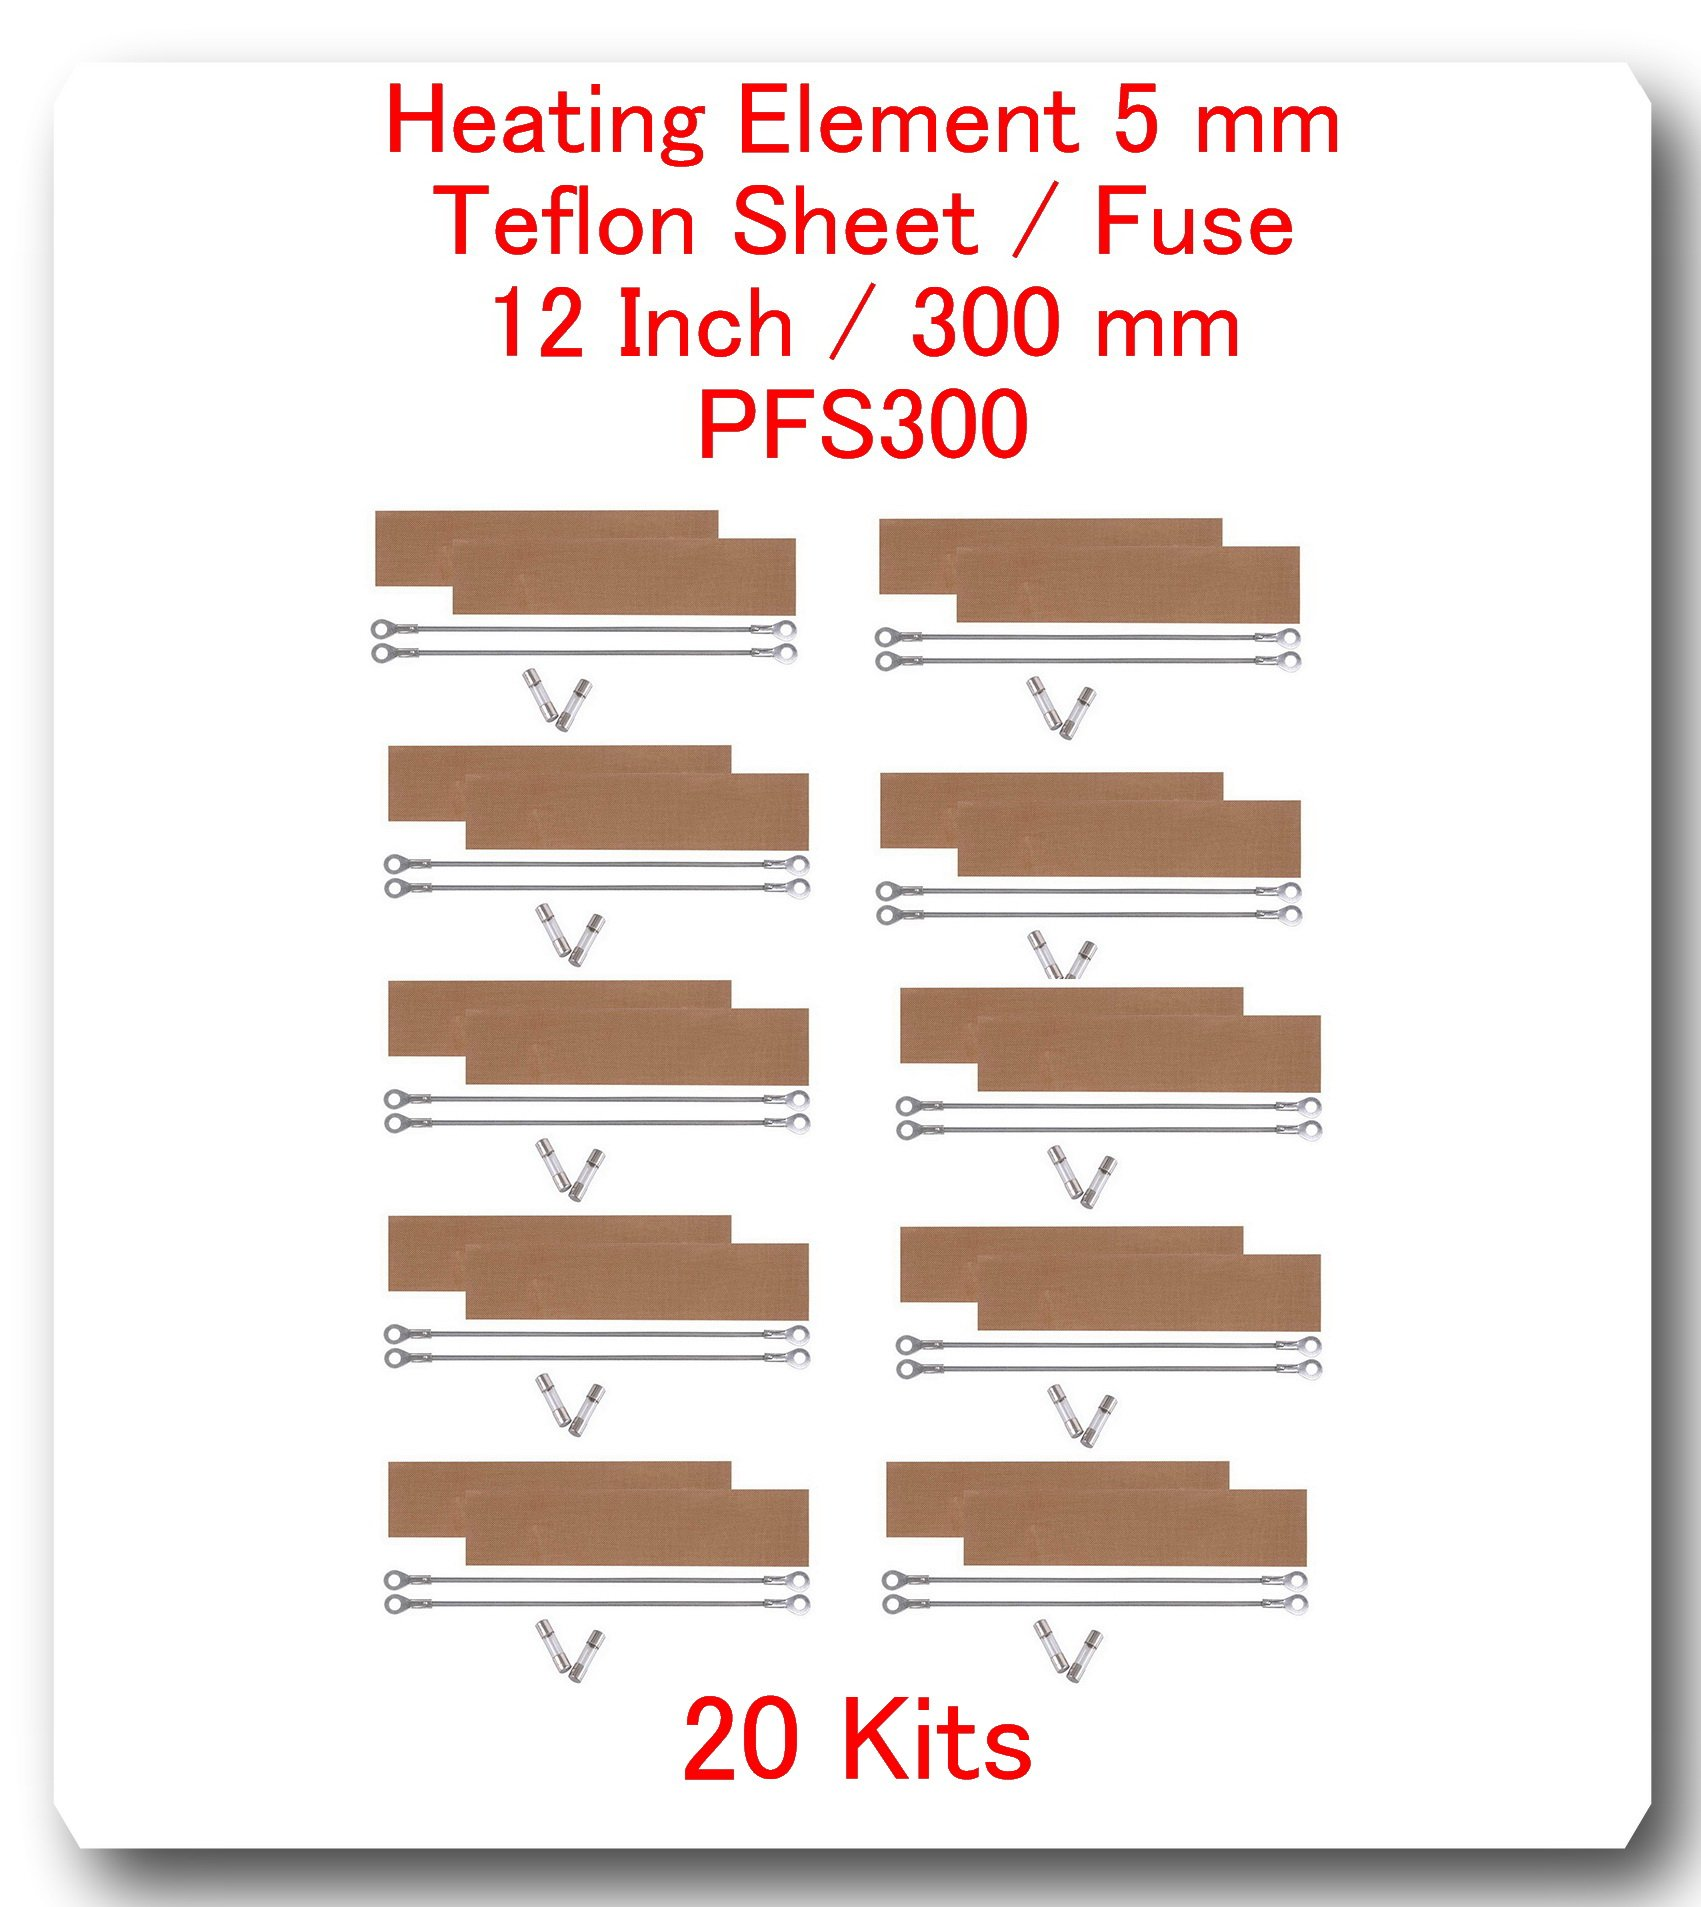 (20 Kits) Replacement Elements for Impulse Sealer PFS-300 12''(20 Heating Elements 5MM + 20 Teflon Sheets+ 20 Fuses) by SAP